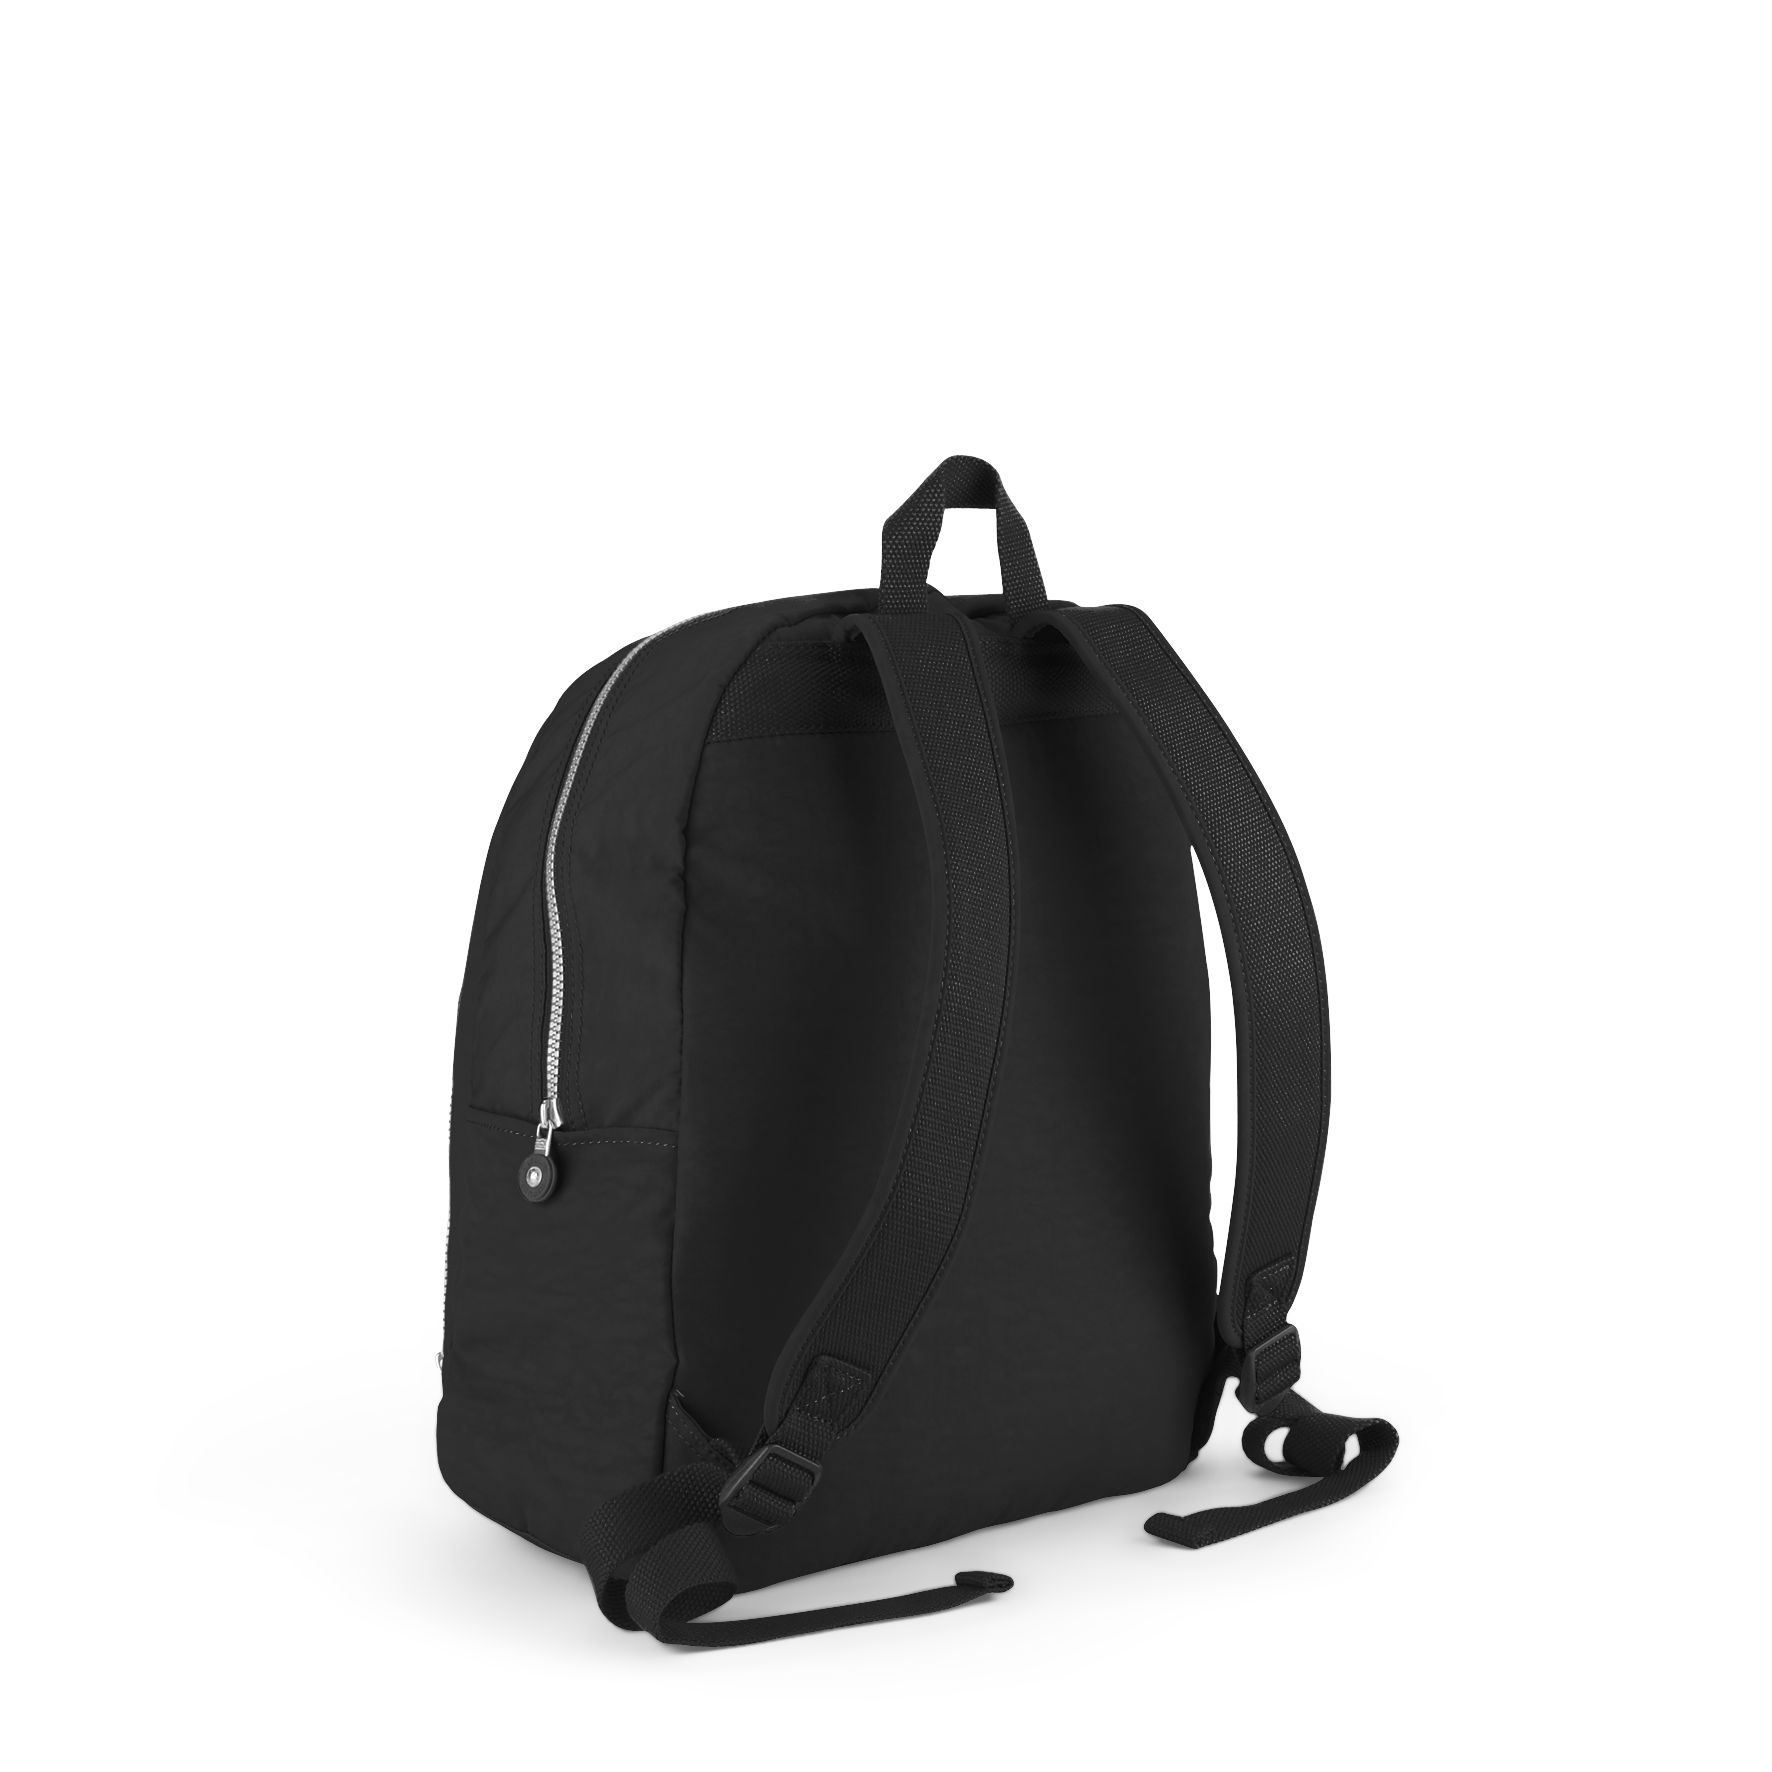 Carmine large backpack